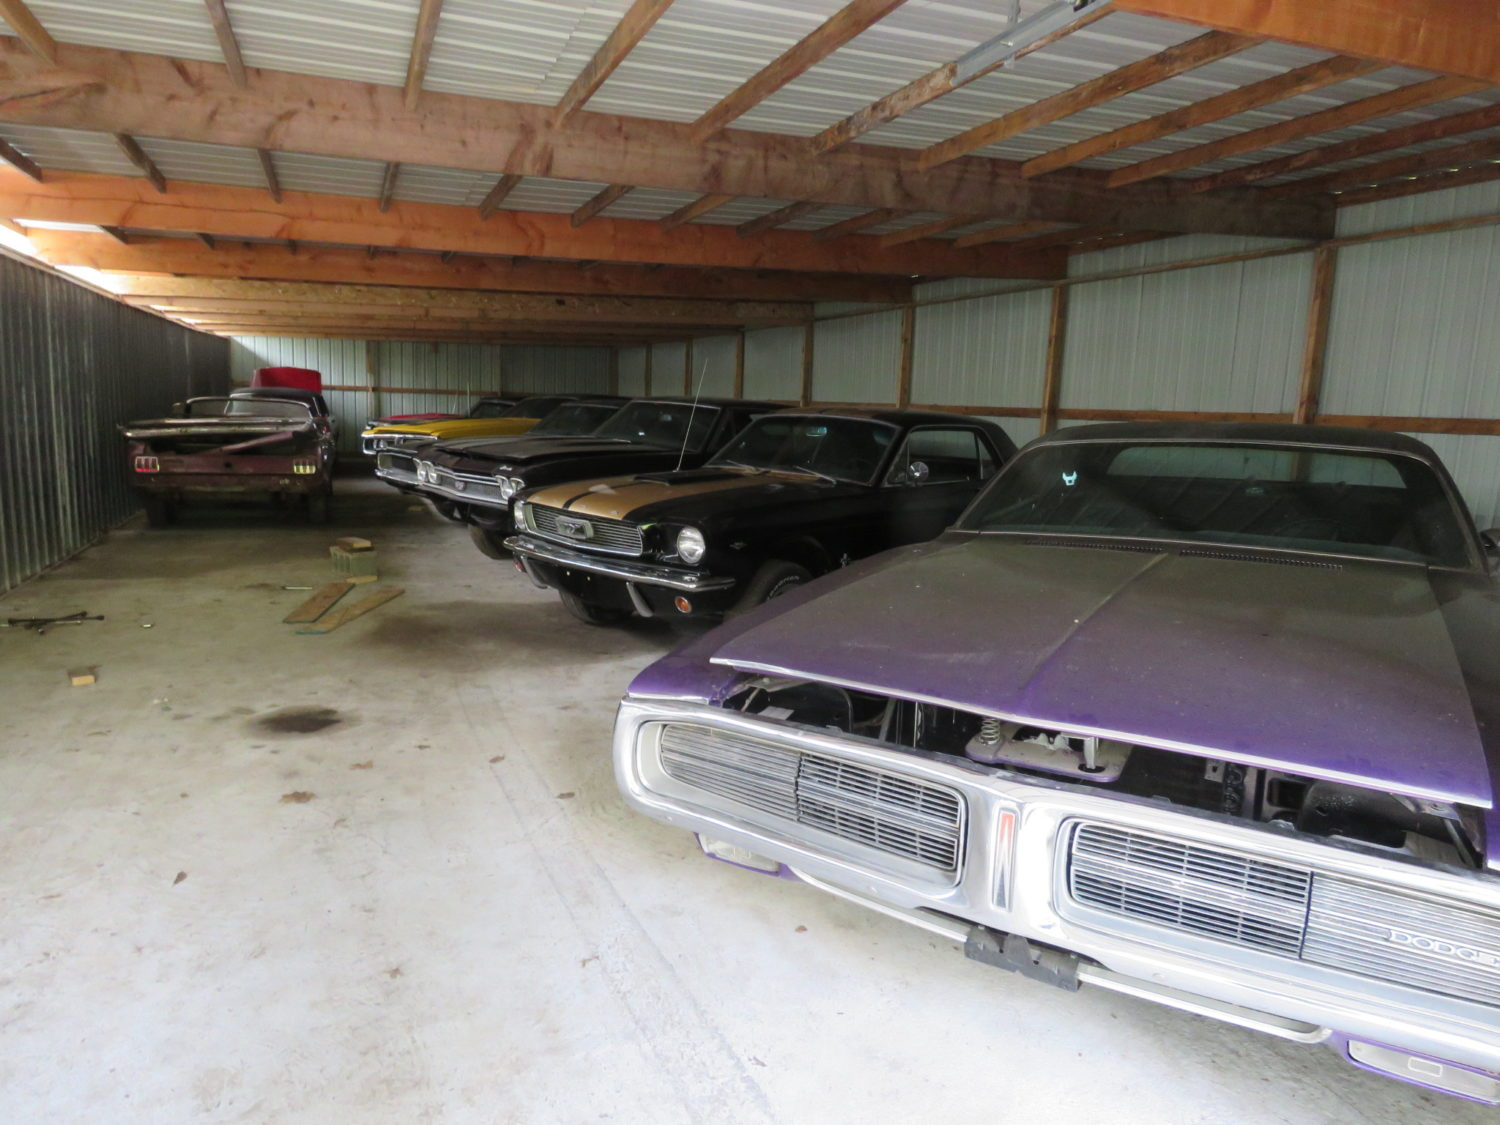 Iowa Muscle Car Hoard at Auction! The Coyote Johnson Collection Auction - image 17